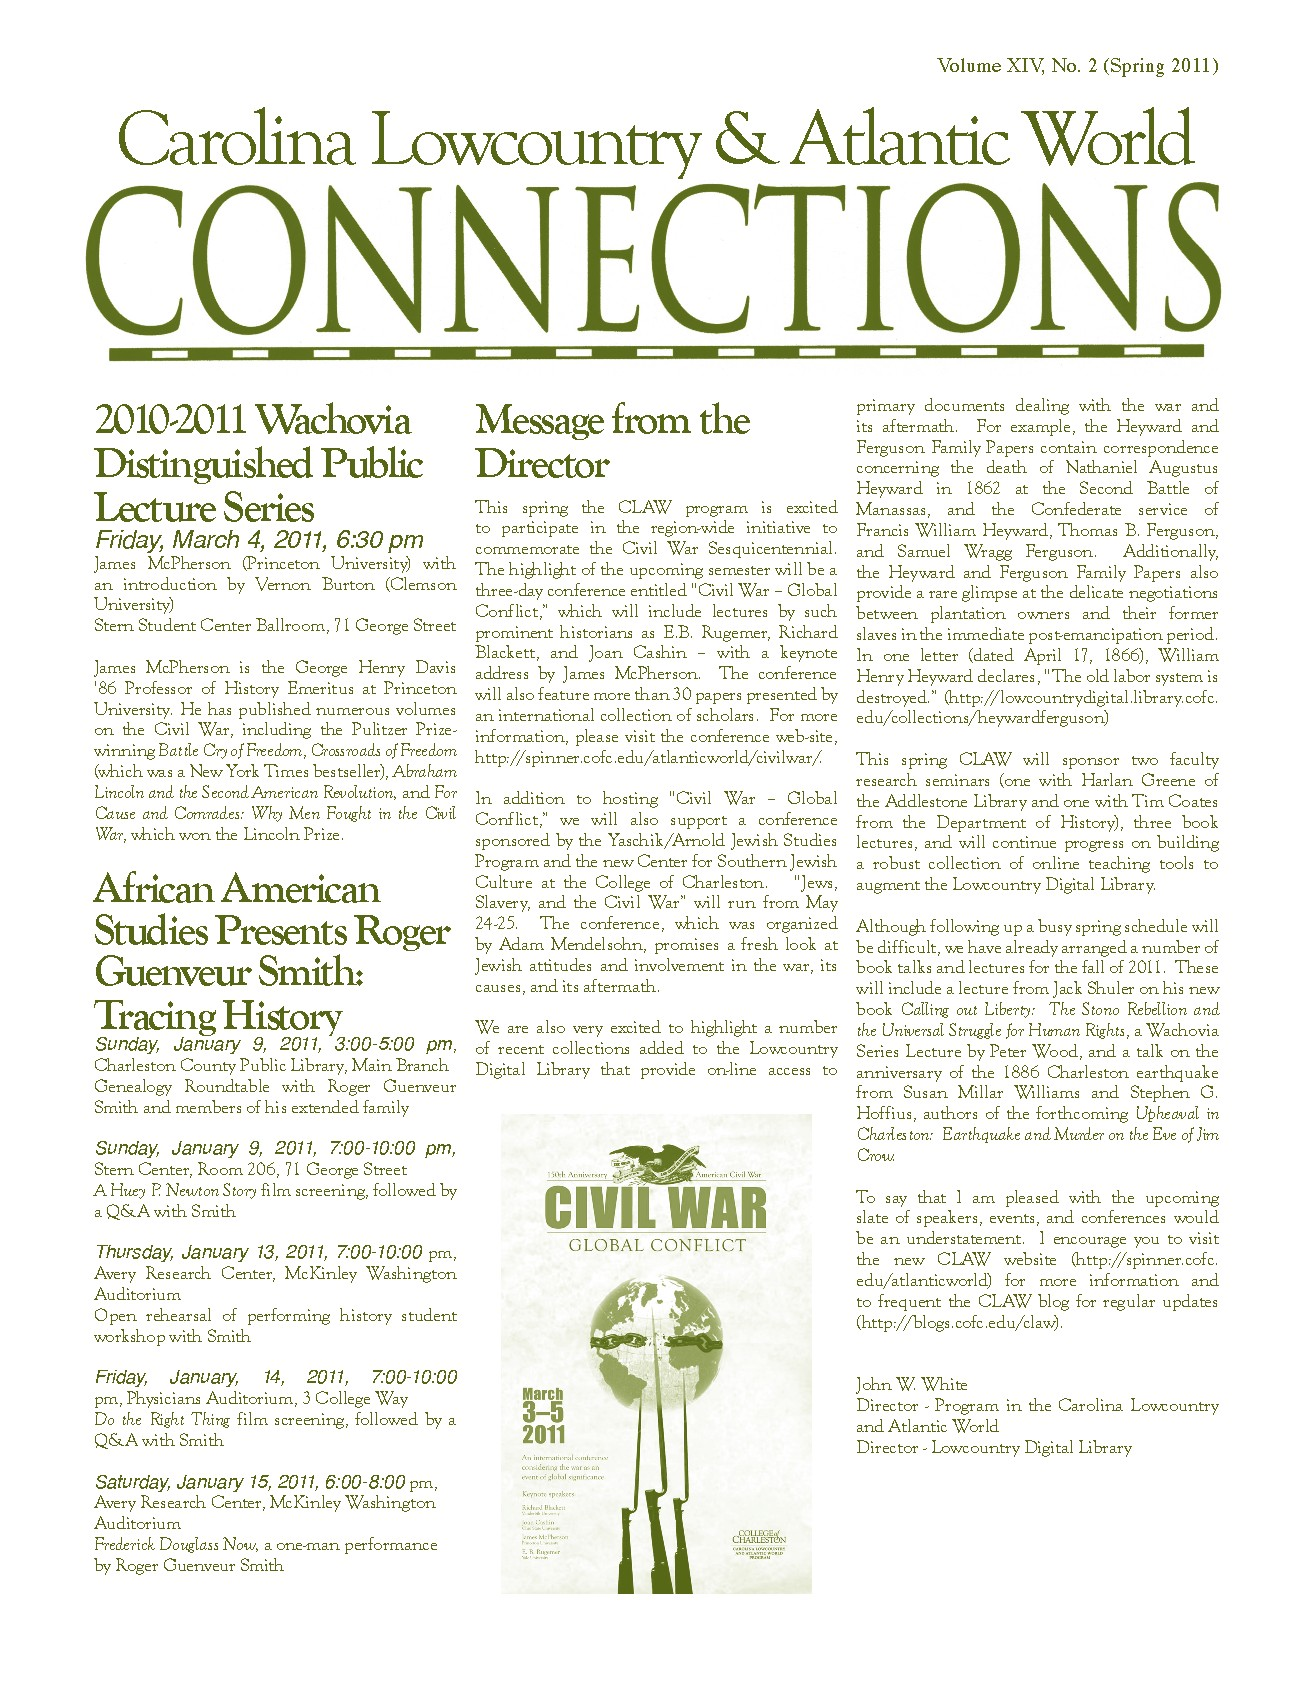 CLAW Newsletter Volume 14, Number 1